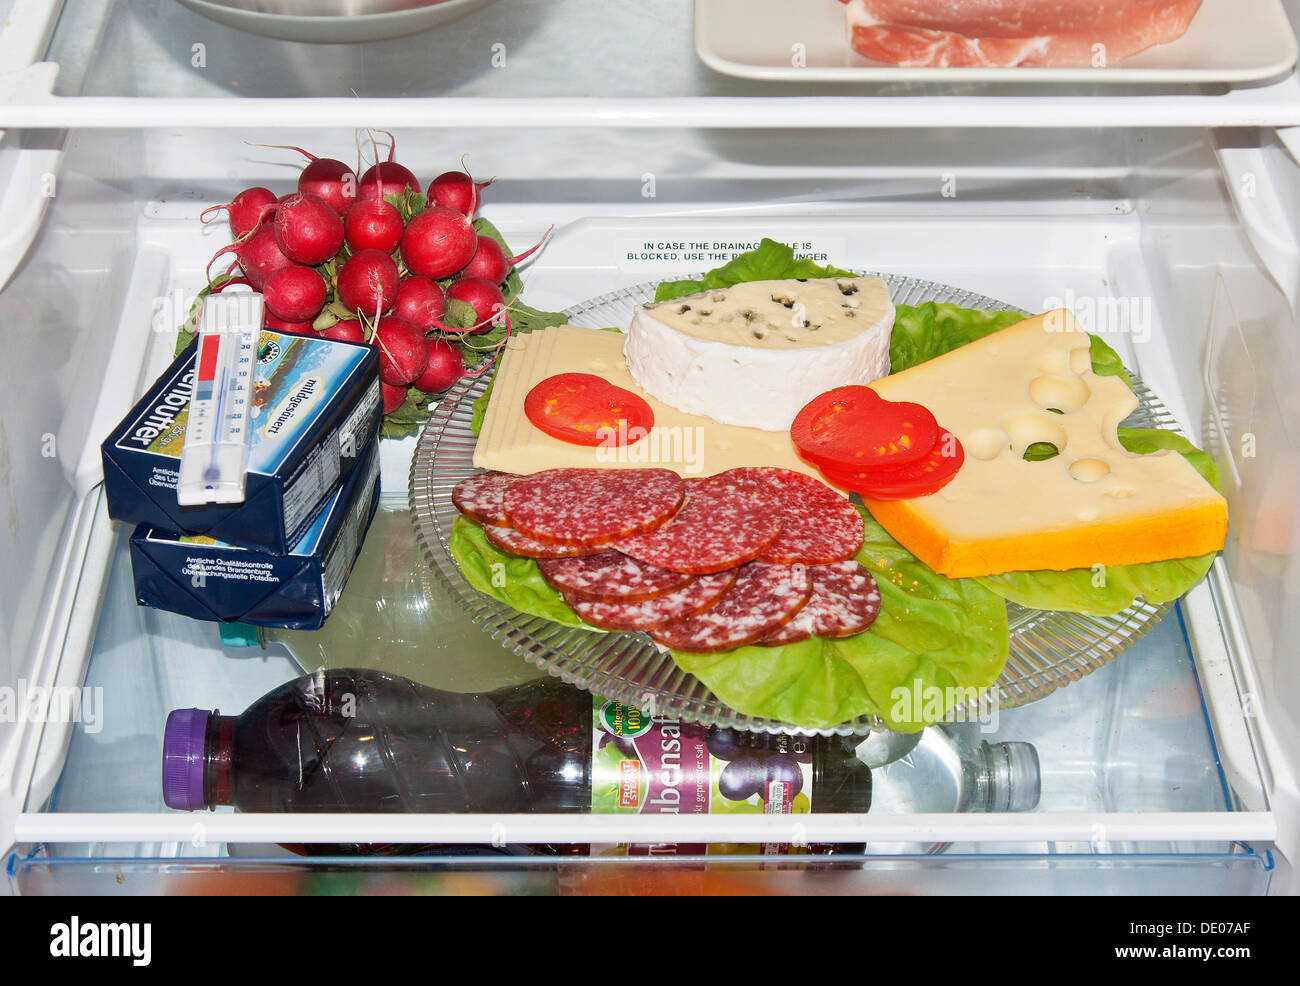 Wrong food storage in a fridge uncovered cheese platter sausage platter  sc 1 st  Alamy & Wrong food storage in a fridge uncovered cheese platter sausage ...